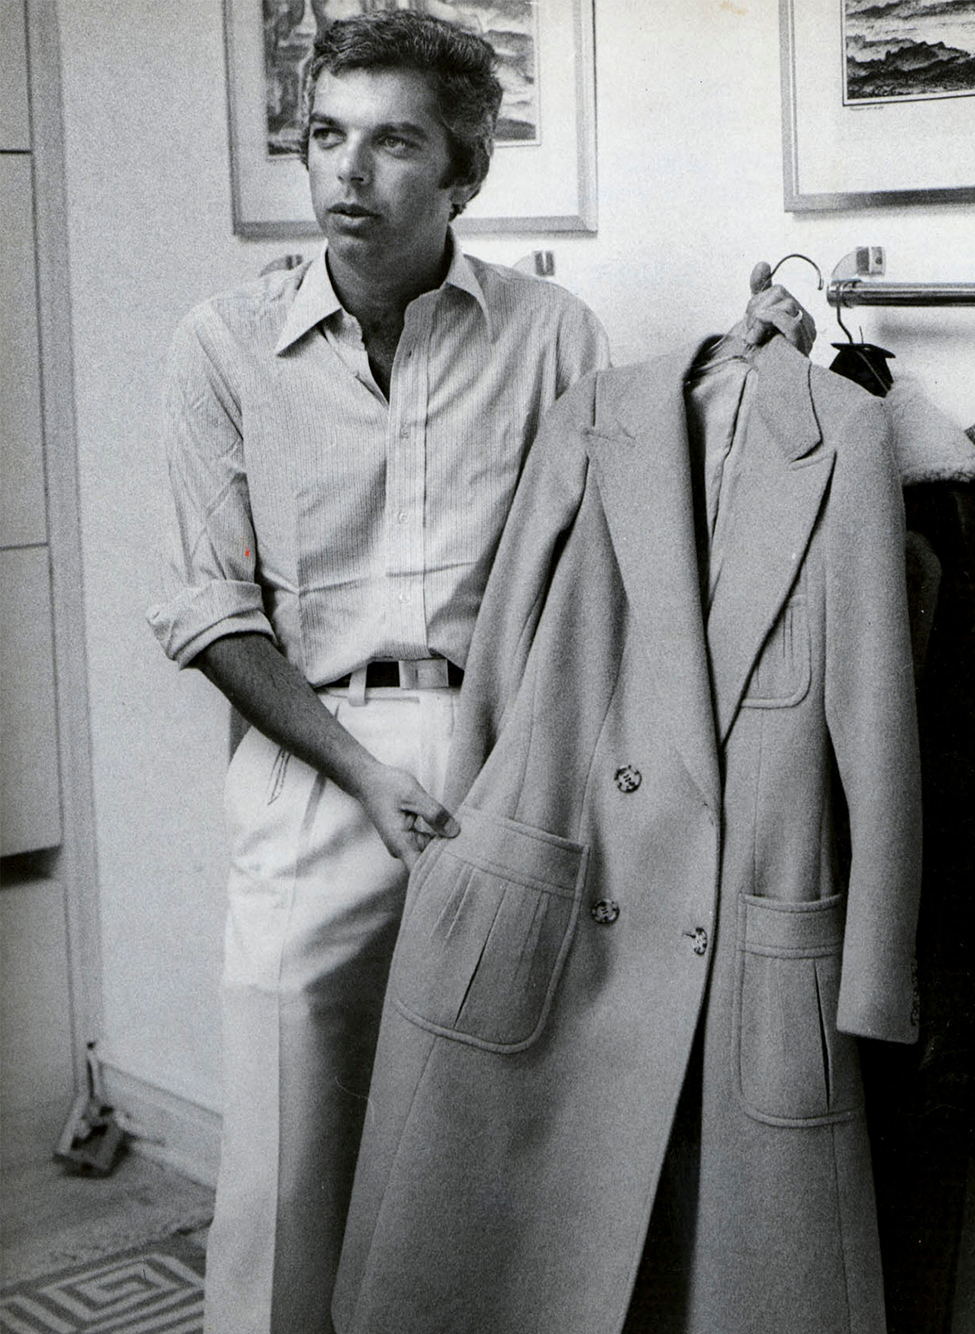 Ralph Lauren in the '70s with his iconic polo coat, which was to become one of the brand's signature classics